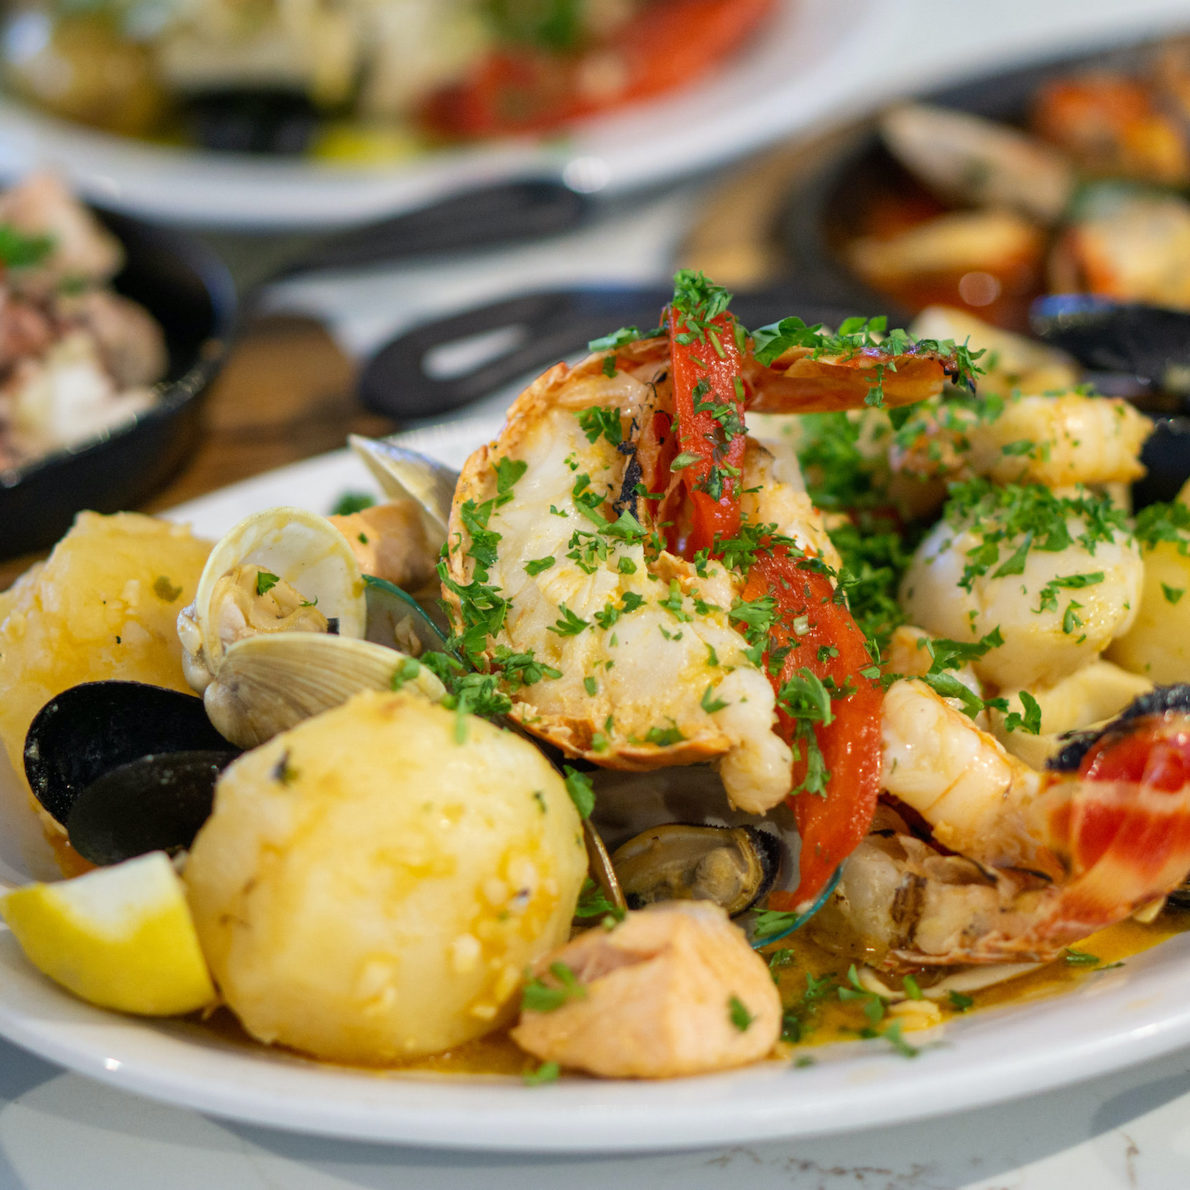 seafood dish from Old Lisbon restaurant with potatoes and black olives.